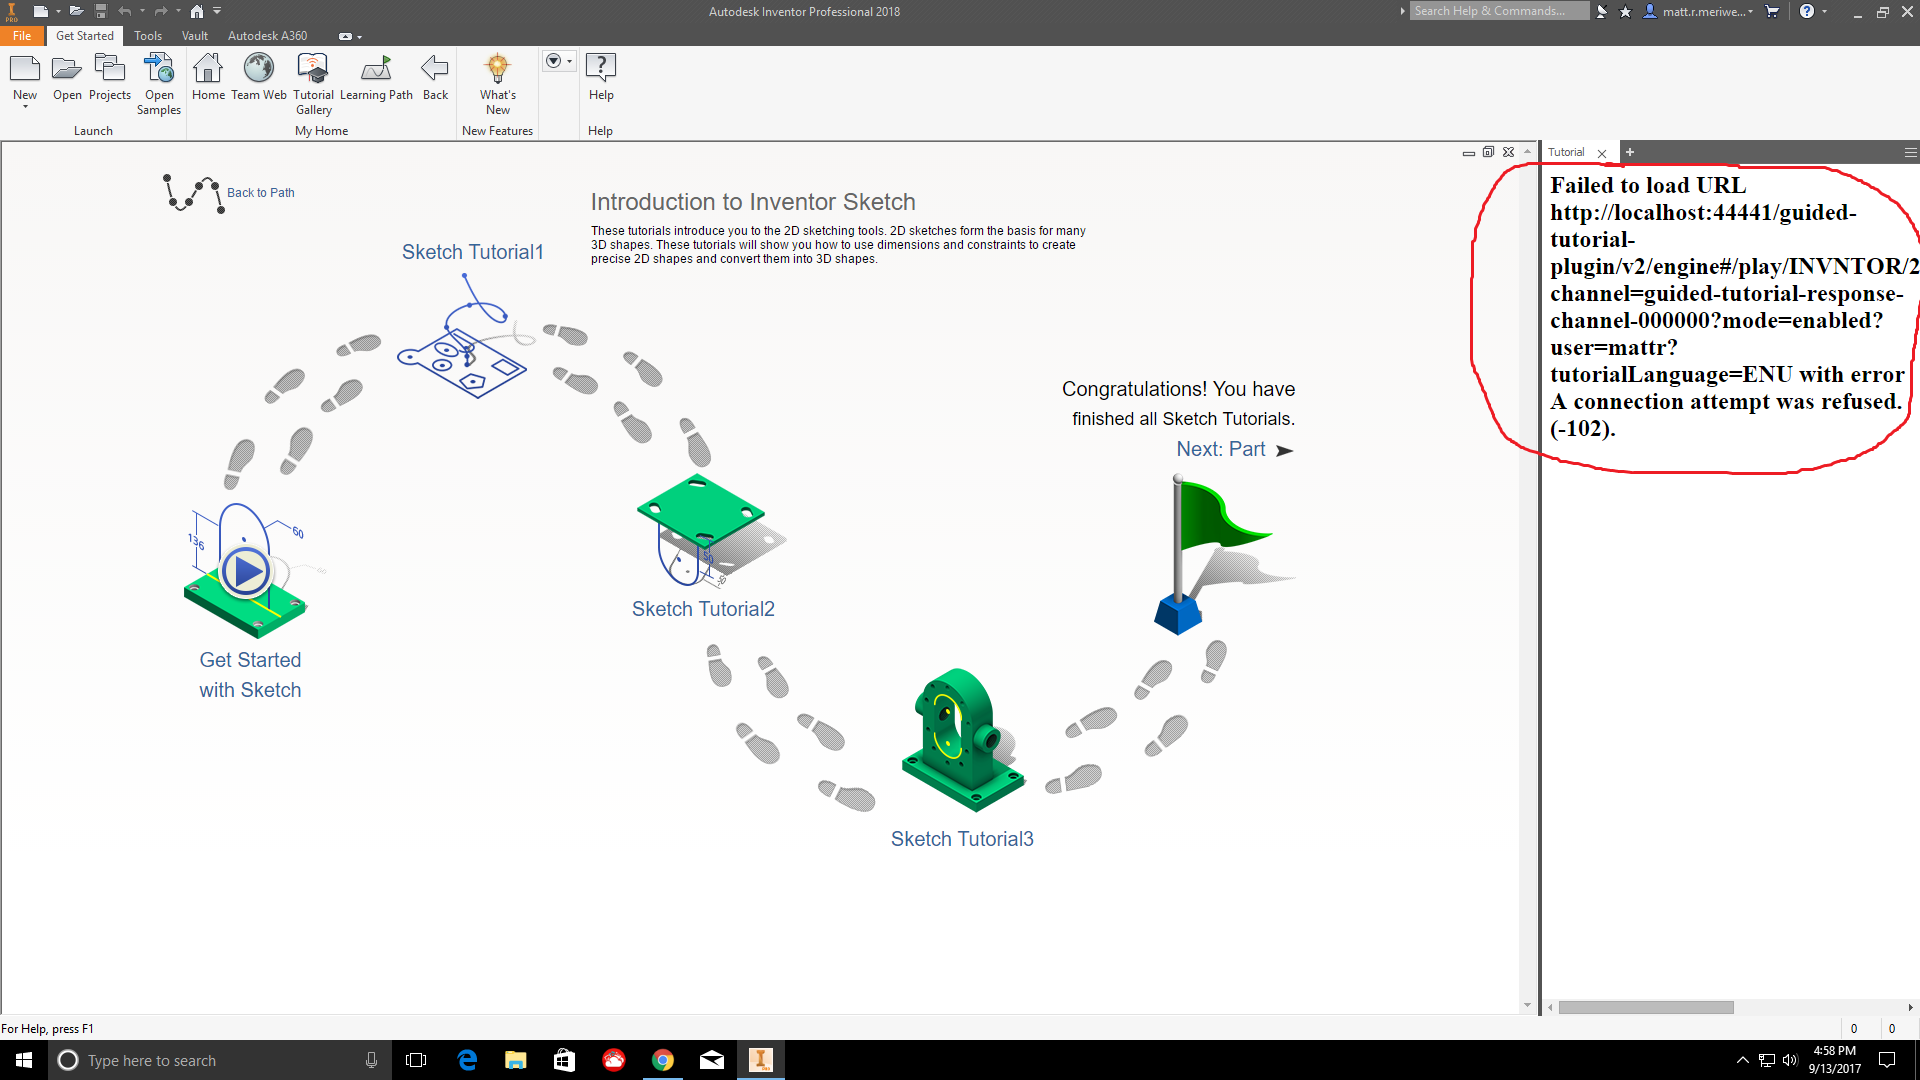 Solved: Inventor 2018 Learning Path and Tutorial Gallery Not